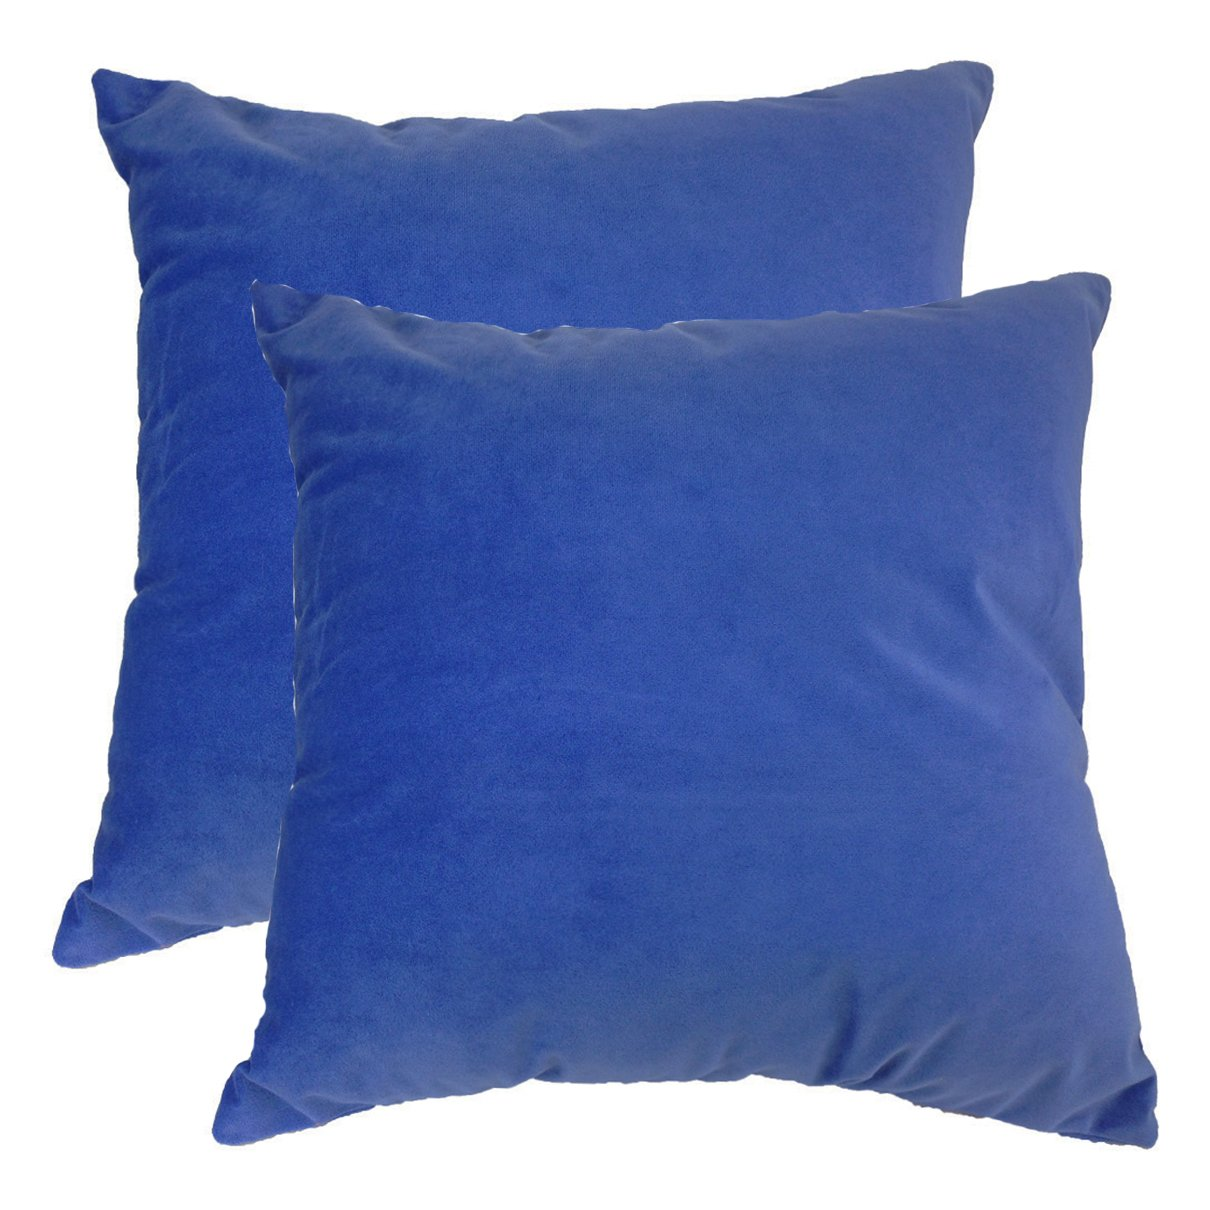 ZXKE Cushion Covers Solid Color Velvet Home Decorative Throw Pillow Cases Square 18' X 18' (Sapphire blue 2 pieces) 20363